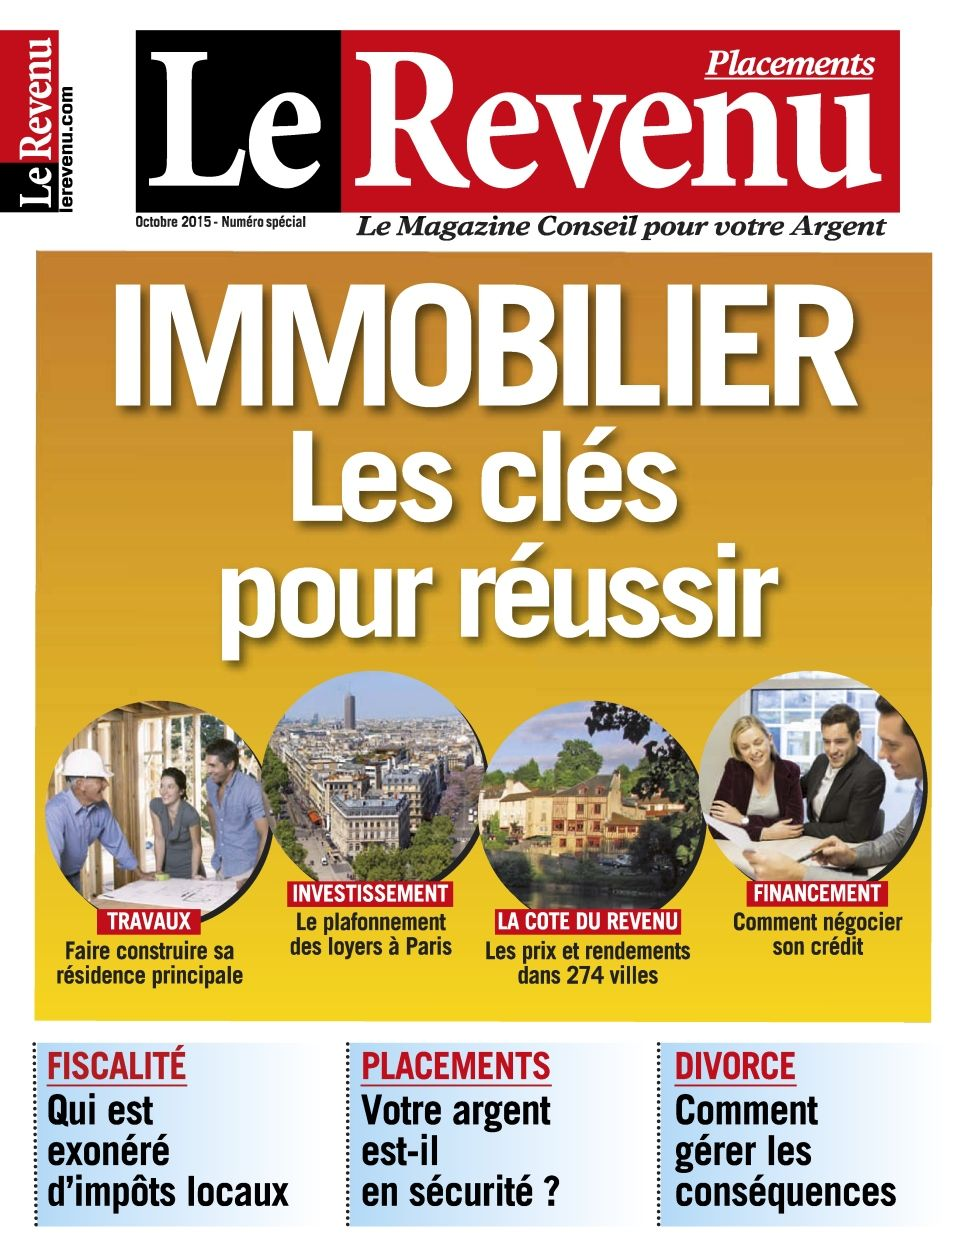 Le Revenu Placements 154 - Octobre 2015